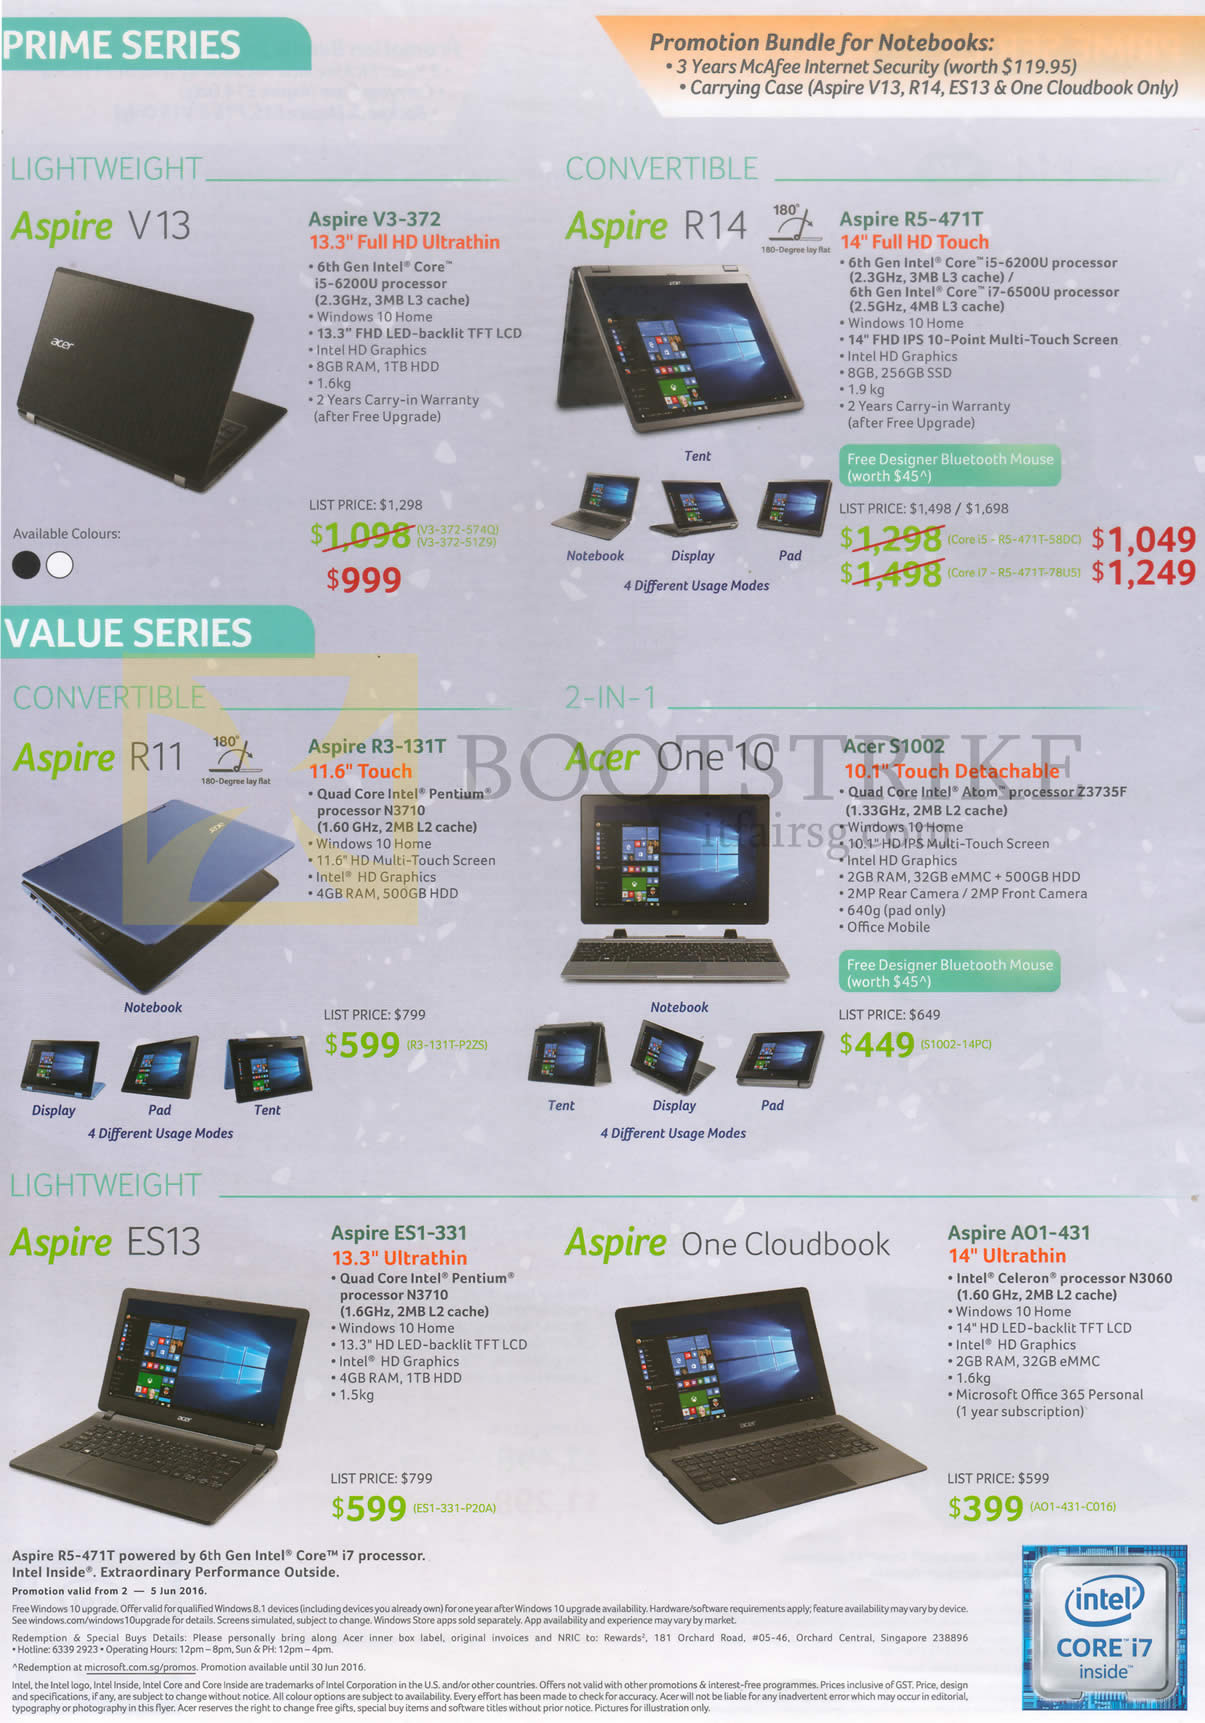 PC SHOW 2016 price list image brochure of Acer Notebooks Aspire V13 R14 R11 ES13 V3-372, R5-471T, R3-131T, S1002, ES1-331, One Cloudbook AO1-431